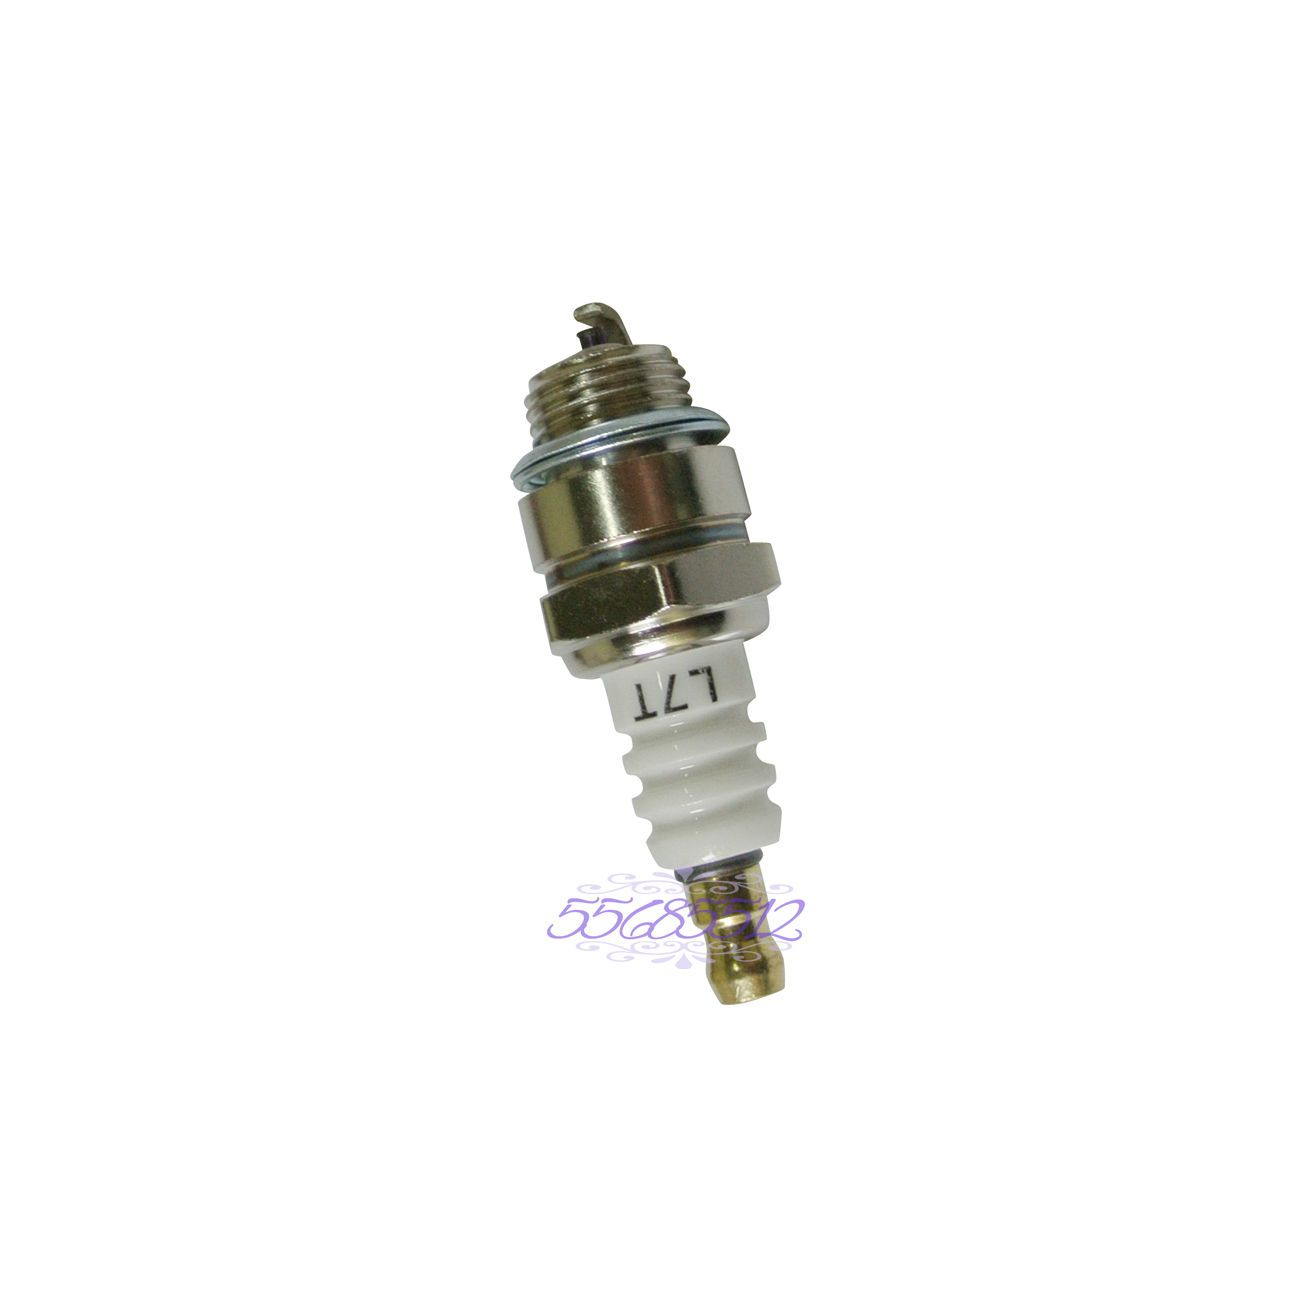 $2 75 - L7T Spark Plug For Partner 350 351 Husqvarna 346Xp